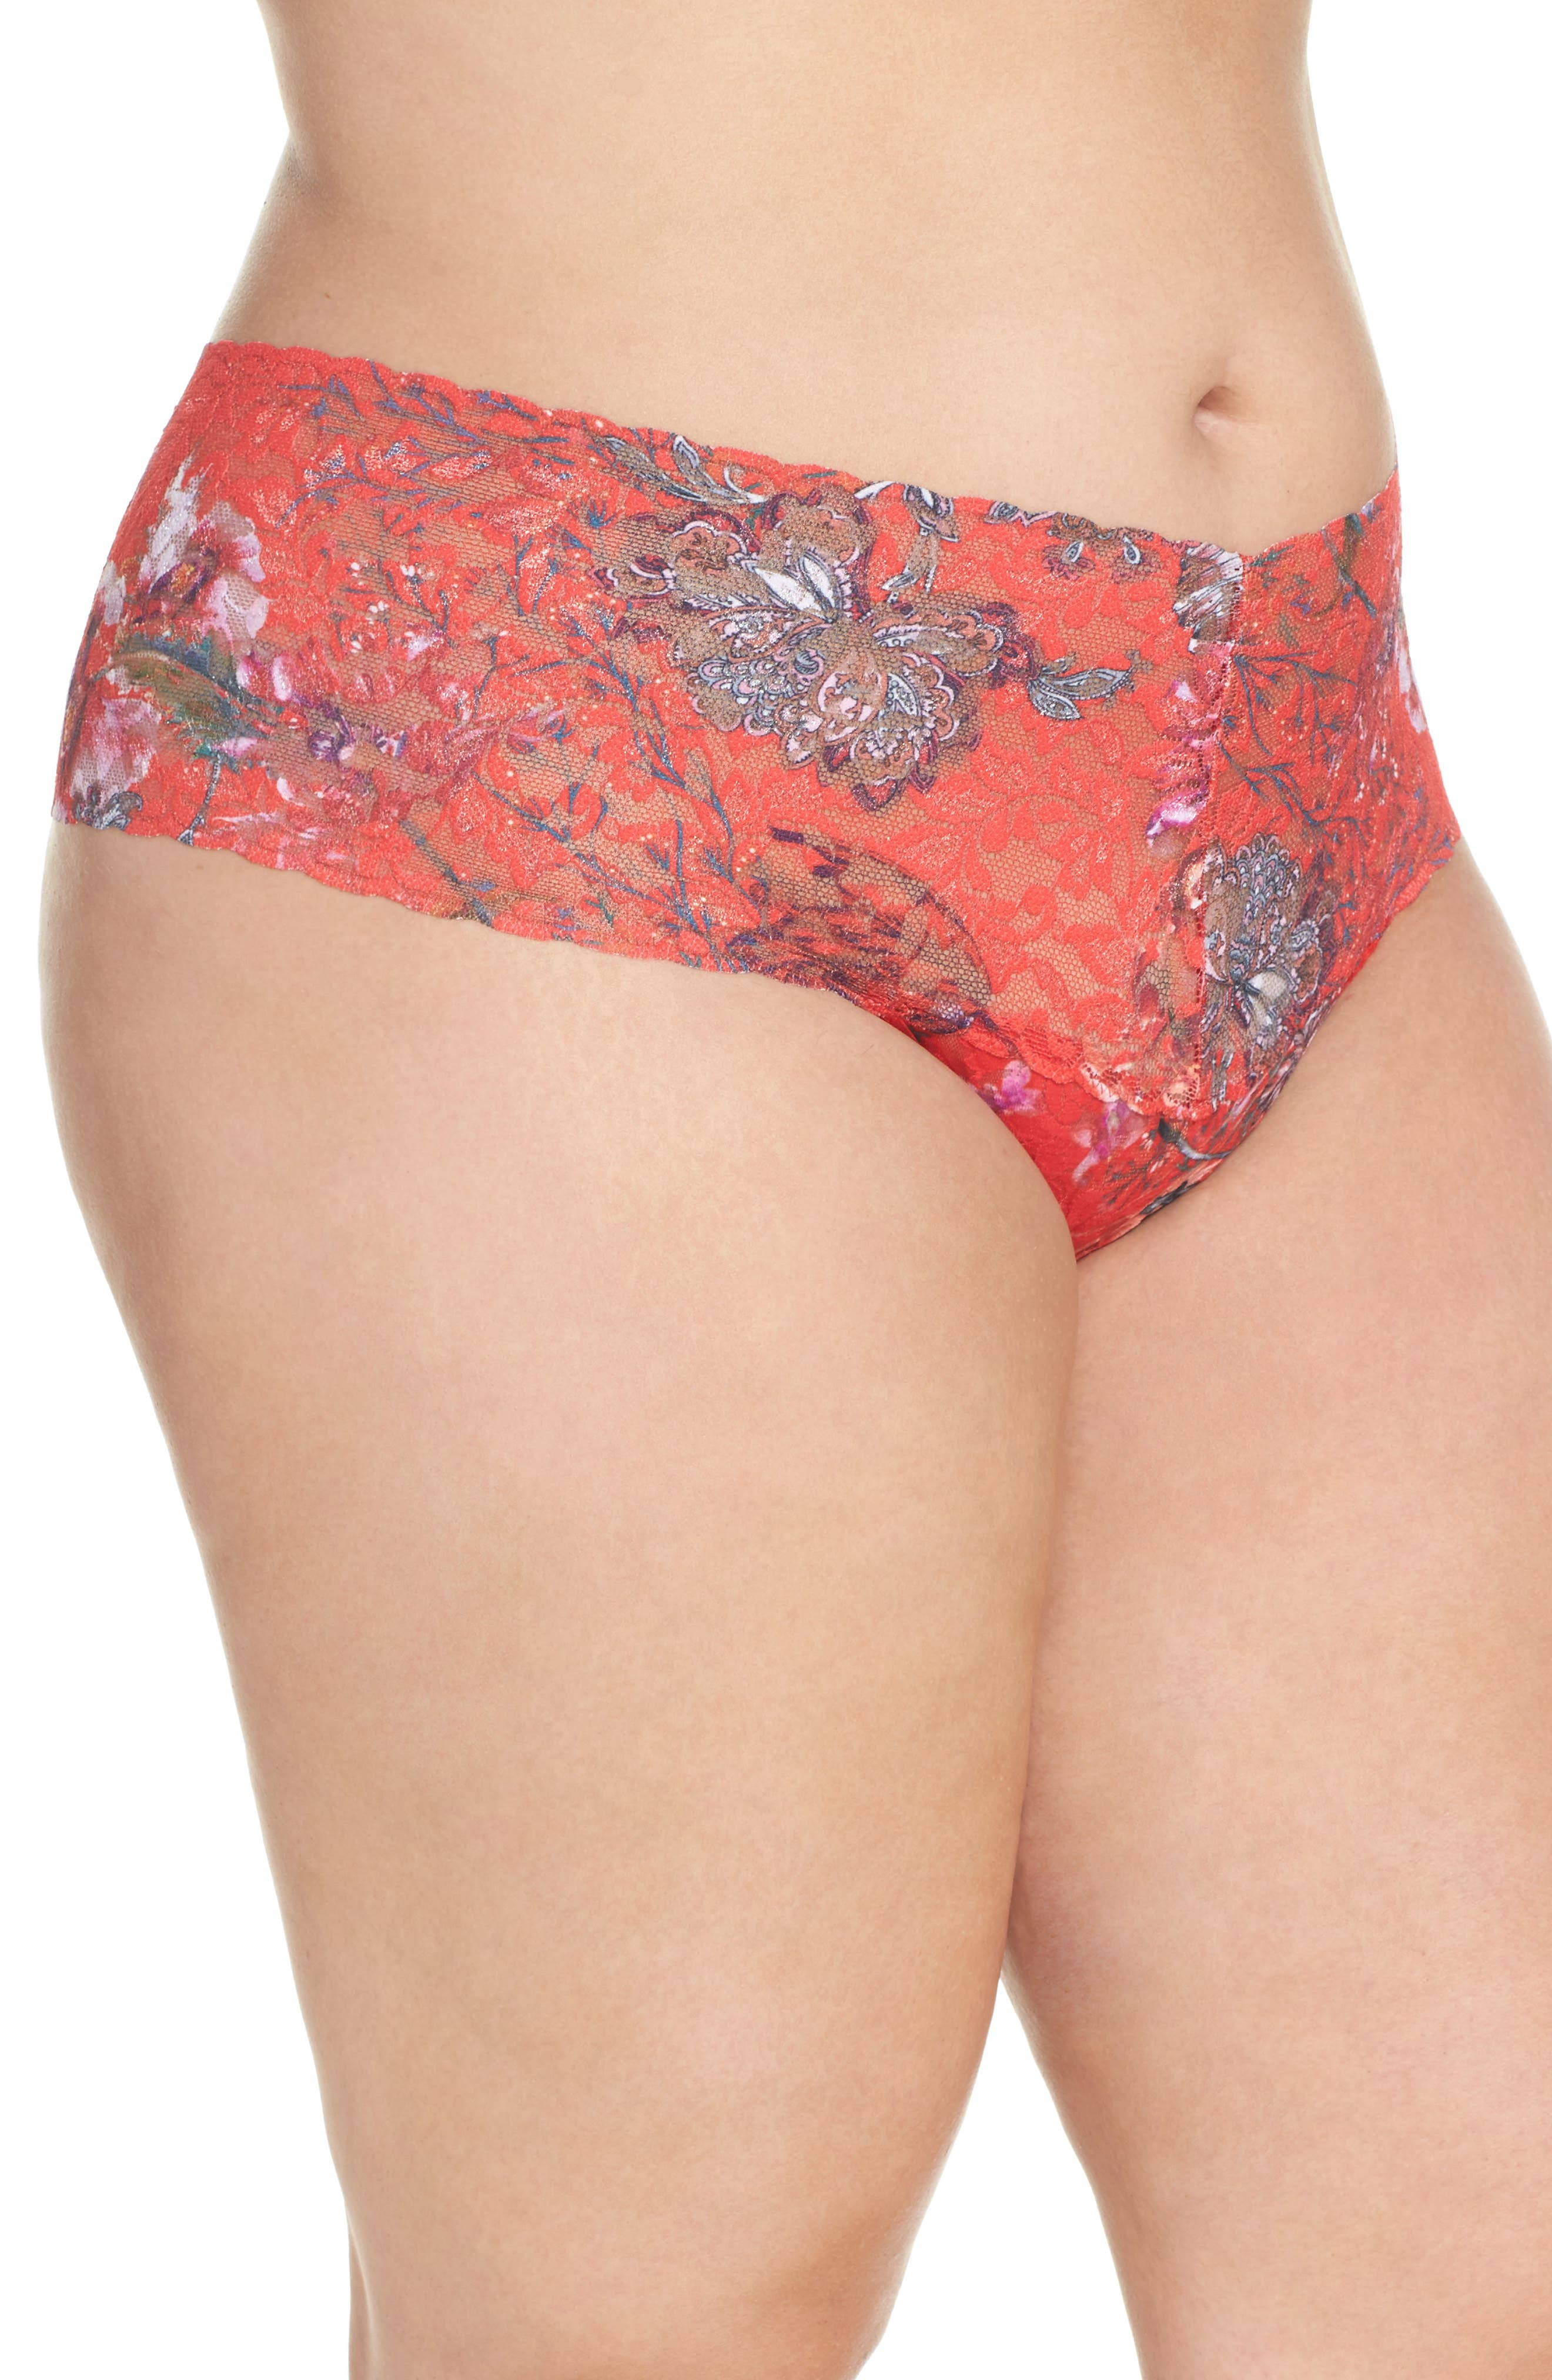 Alternate Image 3  - Hanky Panky Fiery Floral Thong (Plus Size)